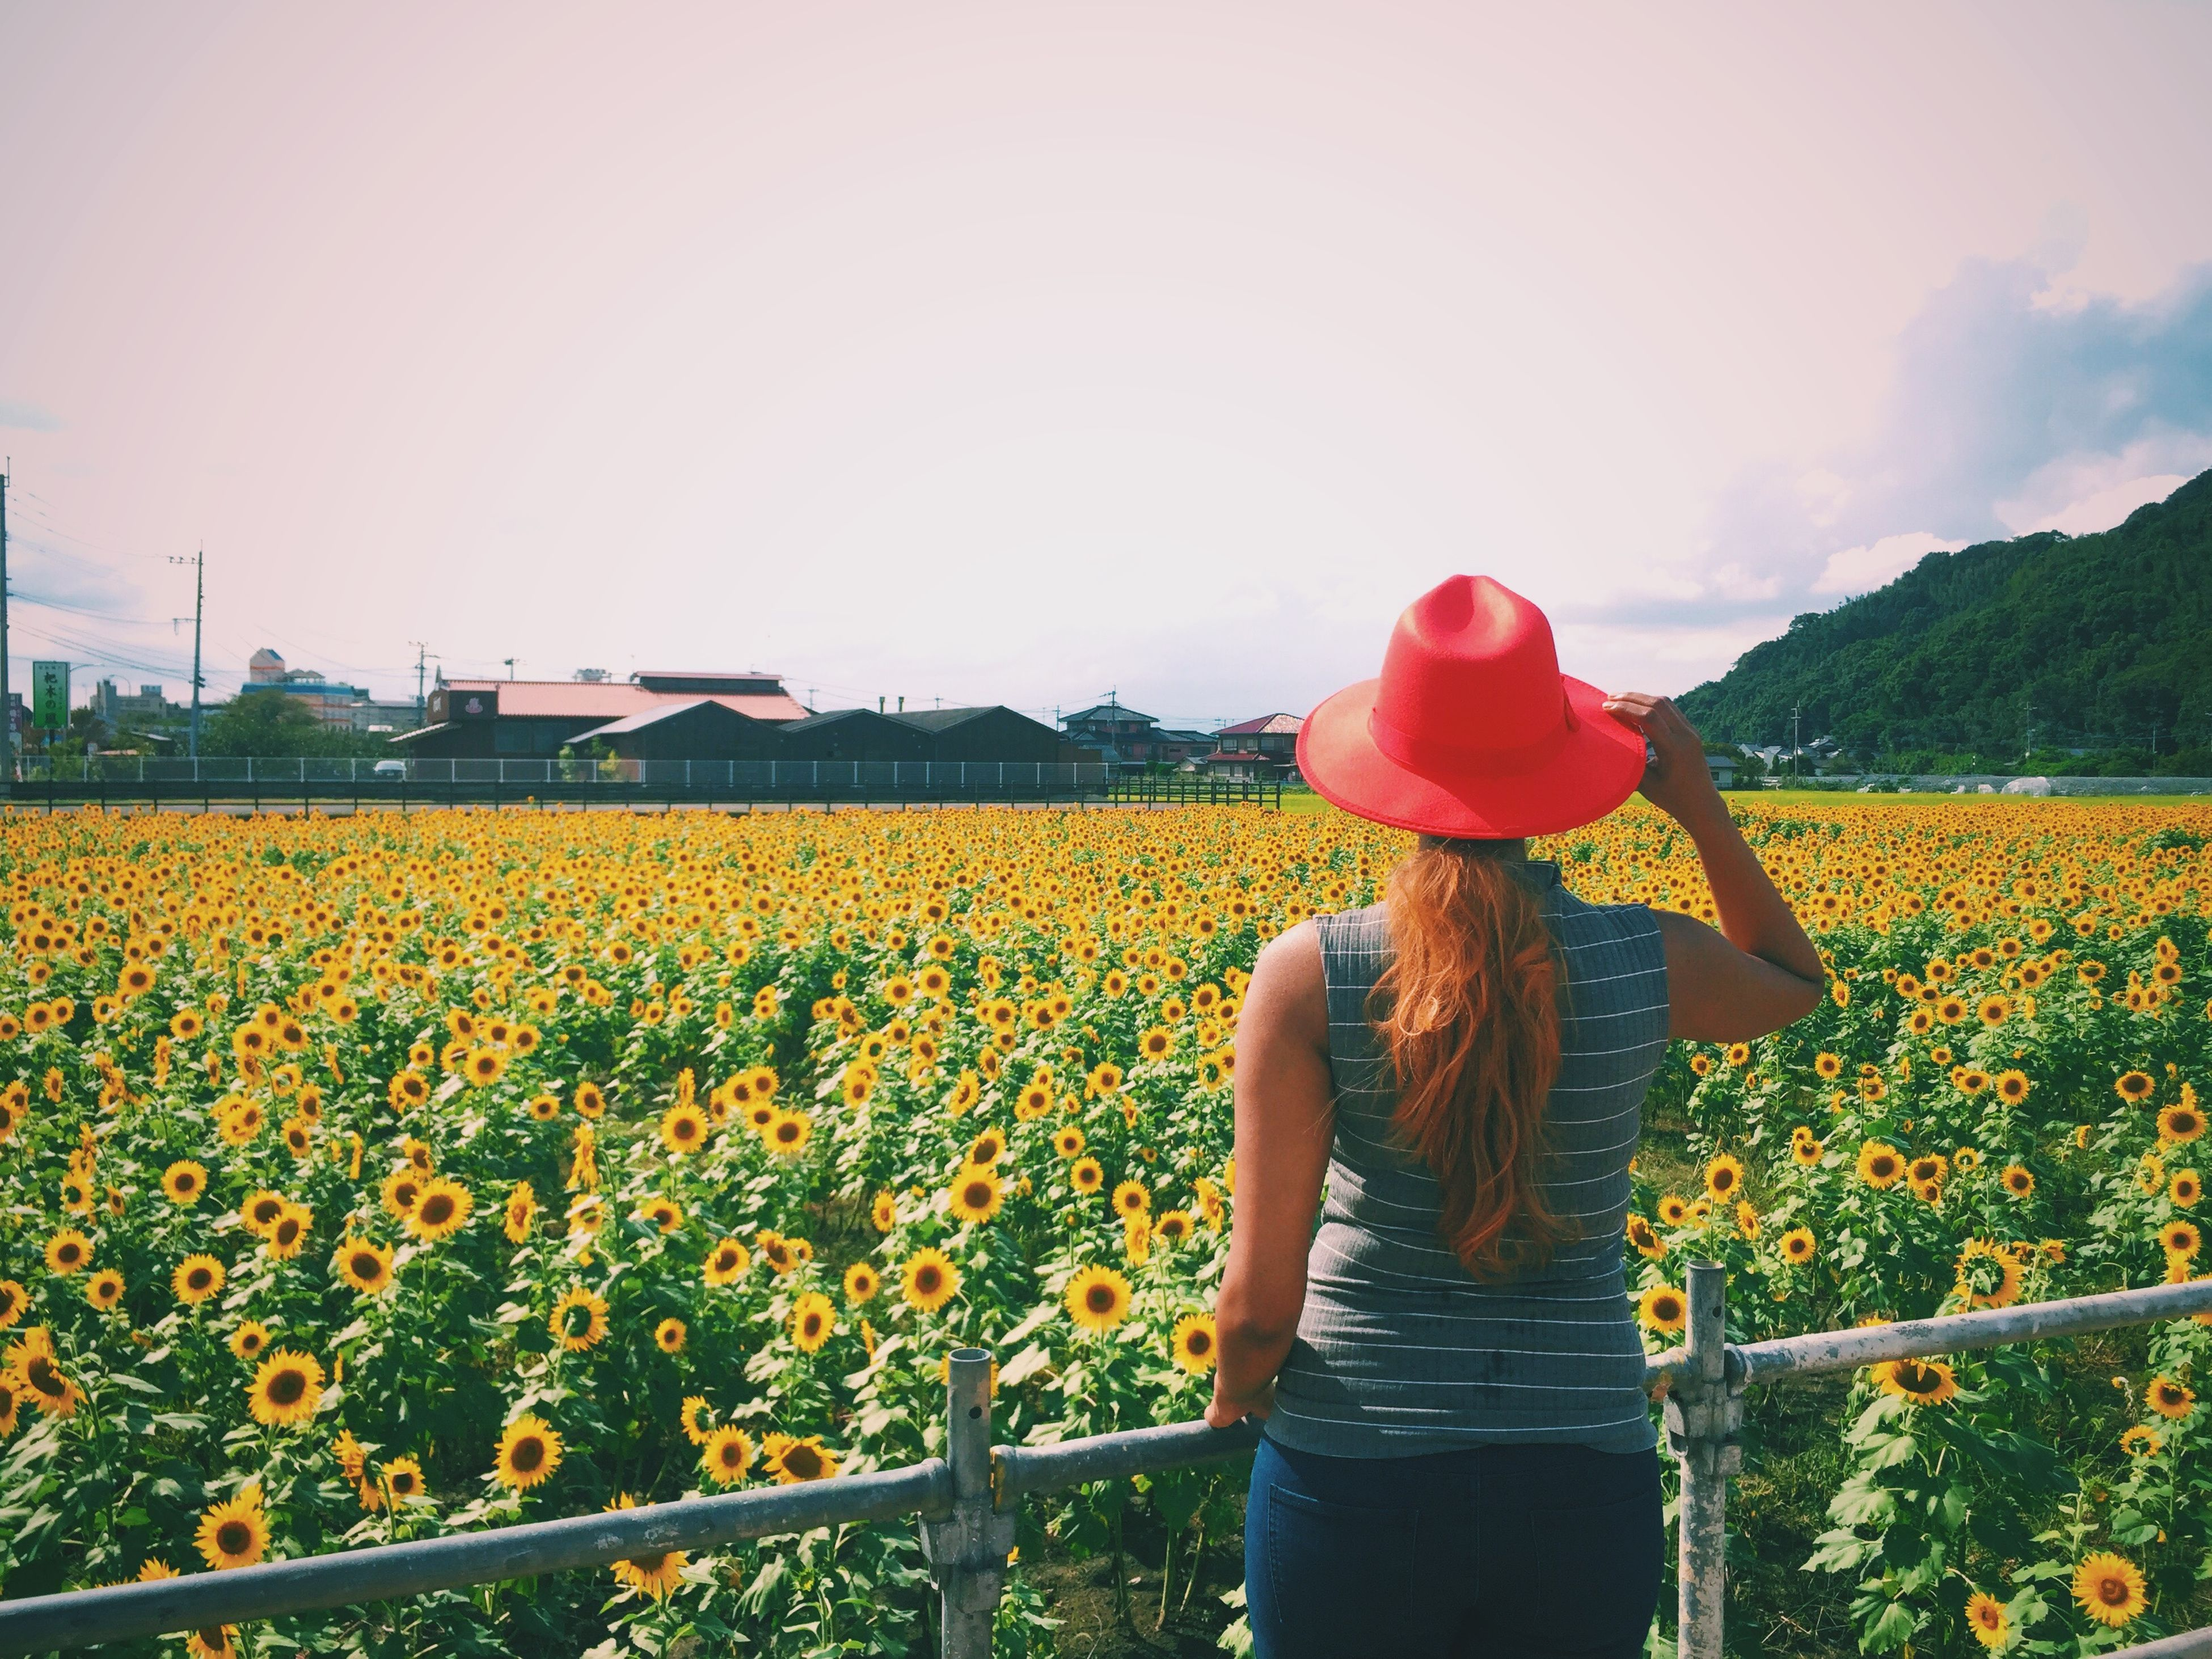 flower, freshness, yellow, beauty in nature, leisure activity, agriculture, lifestyles, standing, field, rear view, nature, rural scene, casual clothing, sky, growth, person, fragility, plant